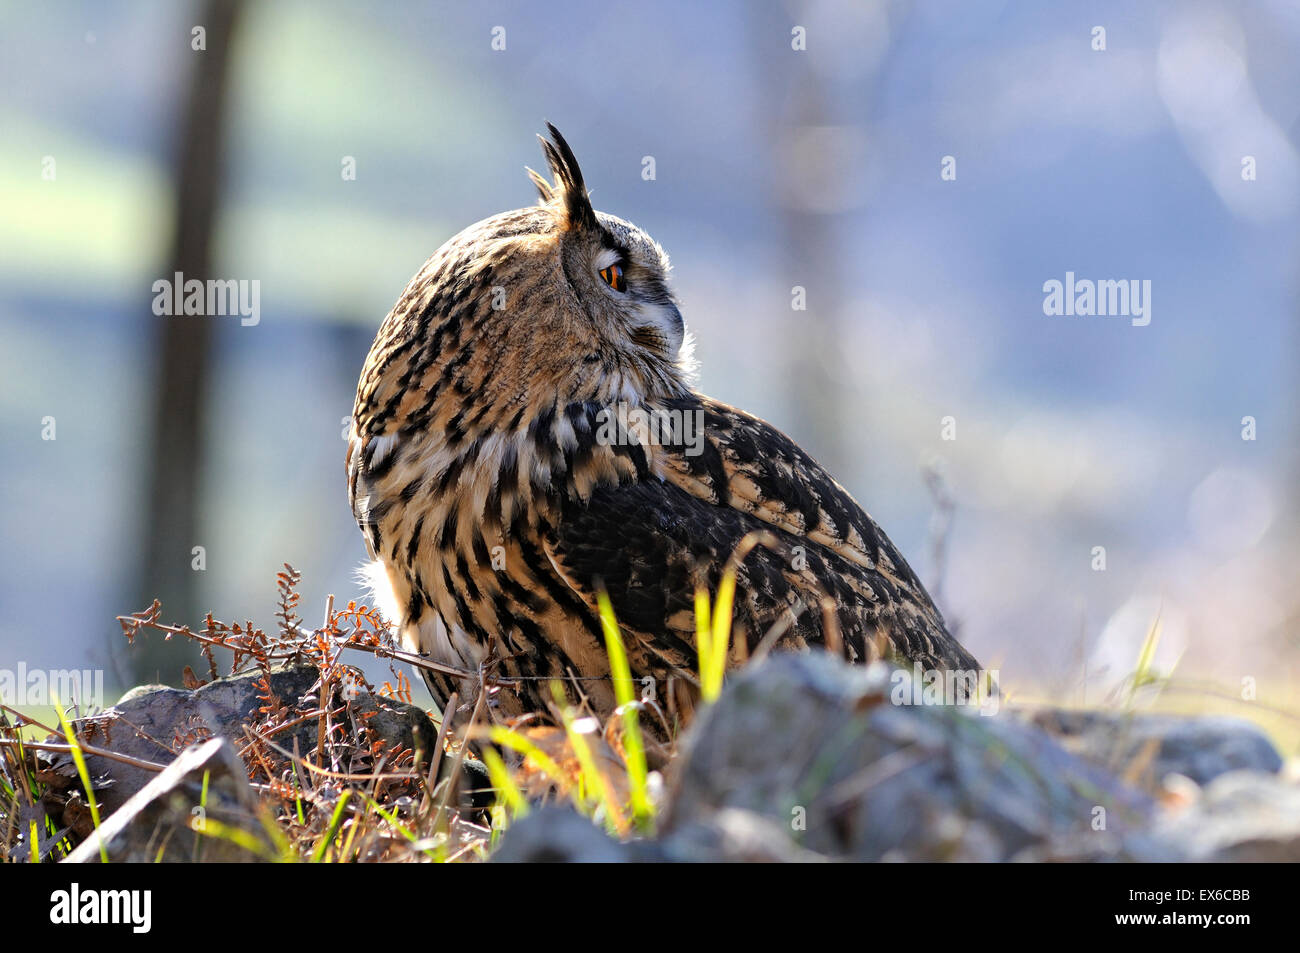 Horizontal portrait of Eurasian Eagle-Owl, Bubo bubo. - Stock Image